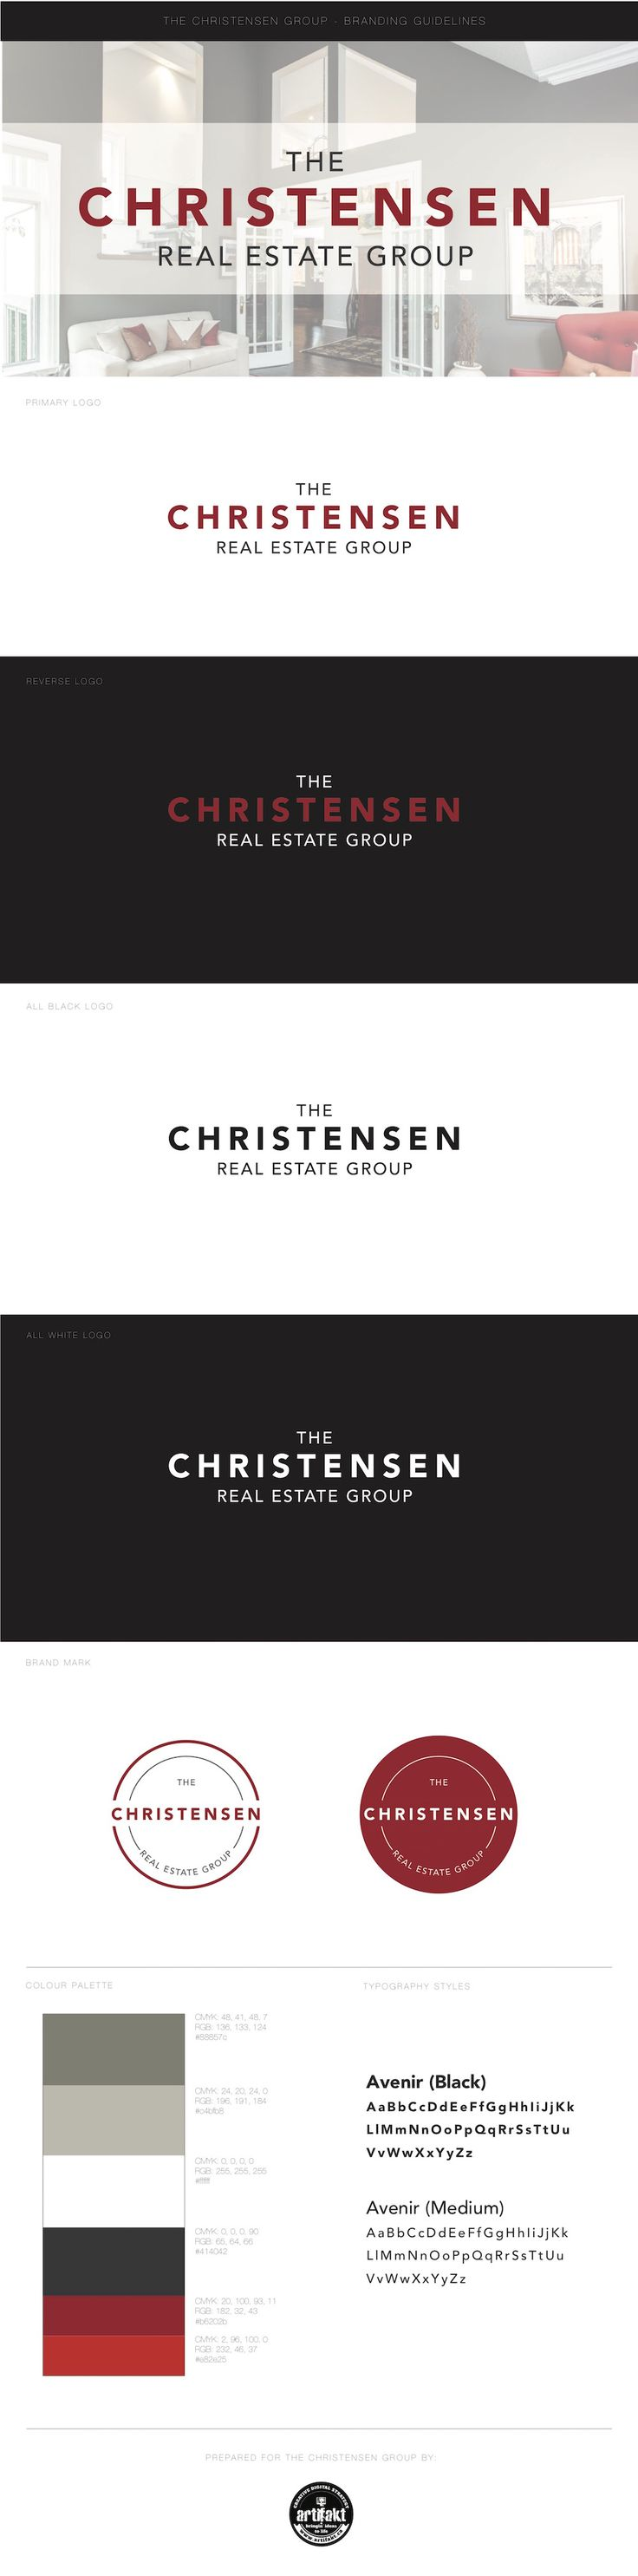 The completed updated branding guidelines we did for The Christensen Real Estate Group.